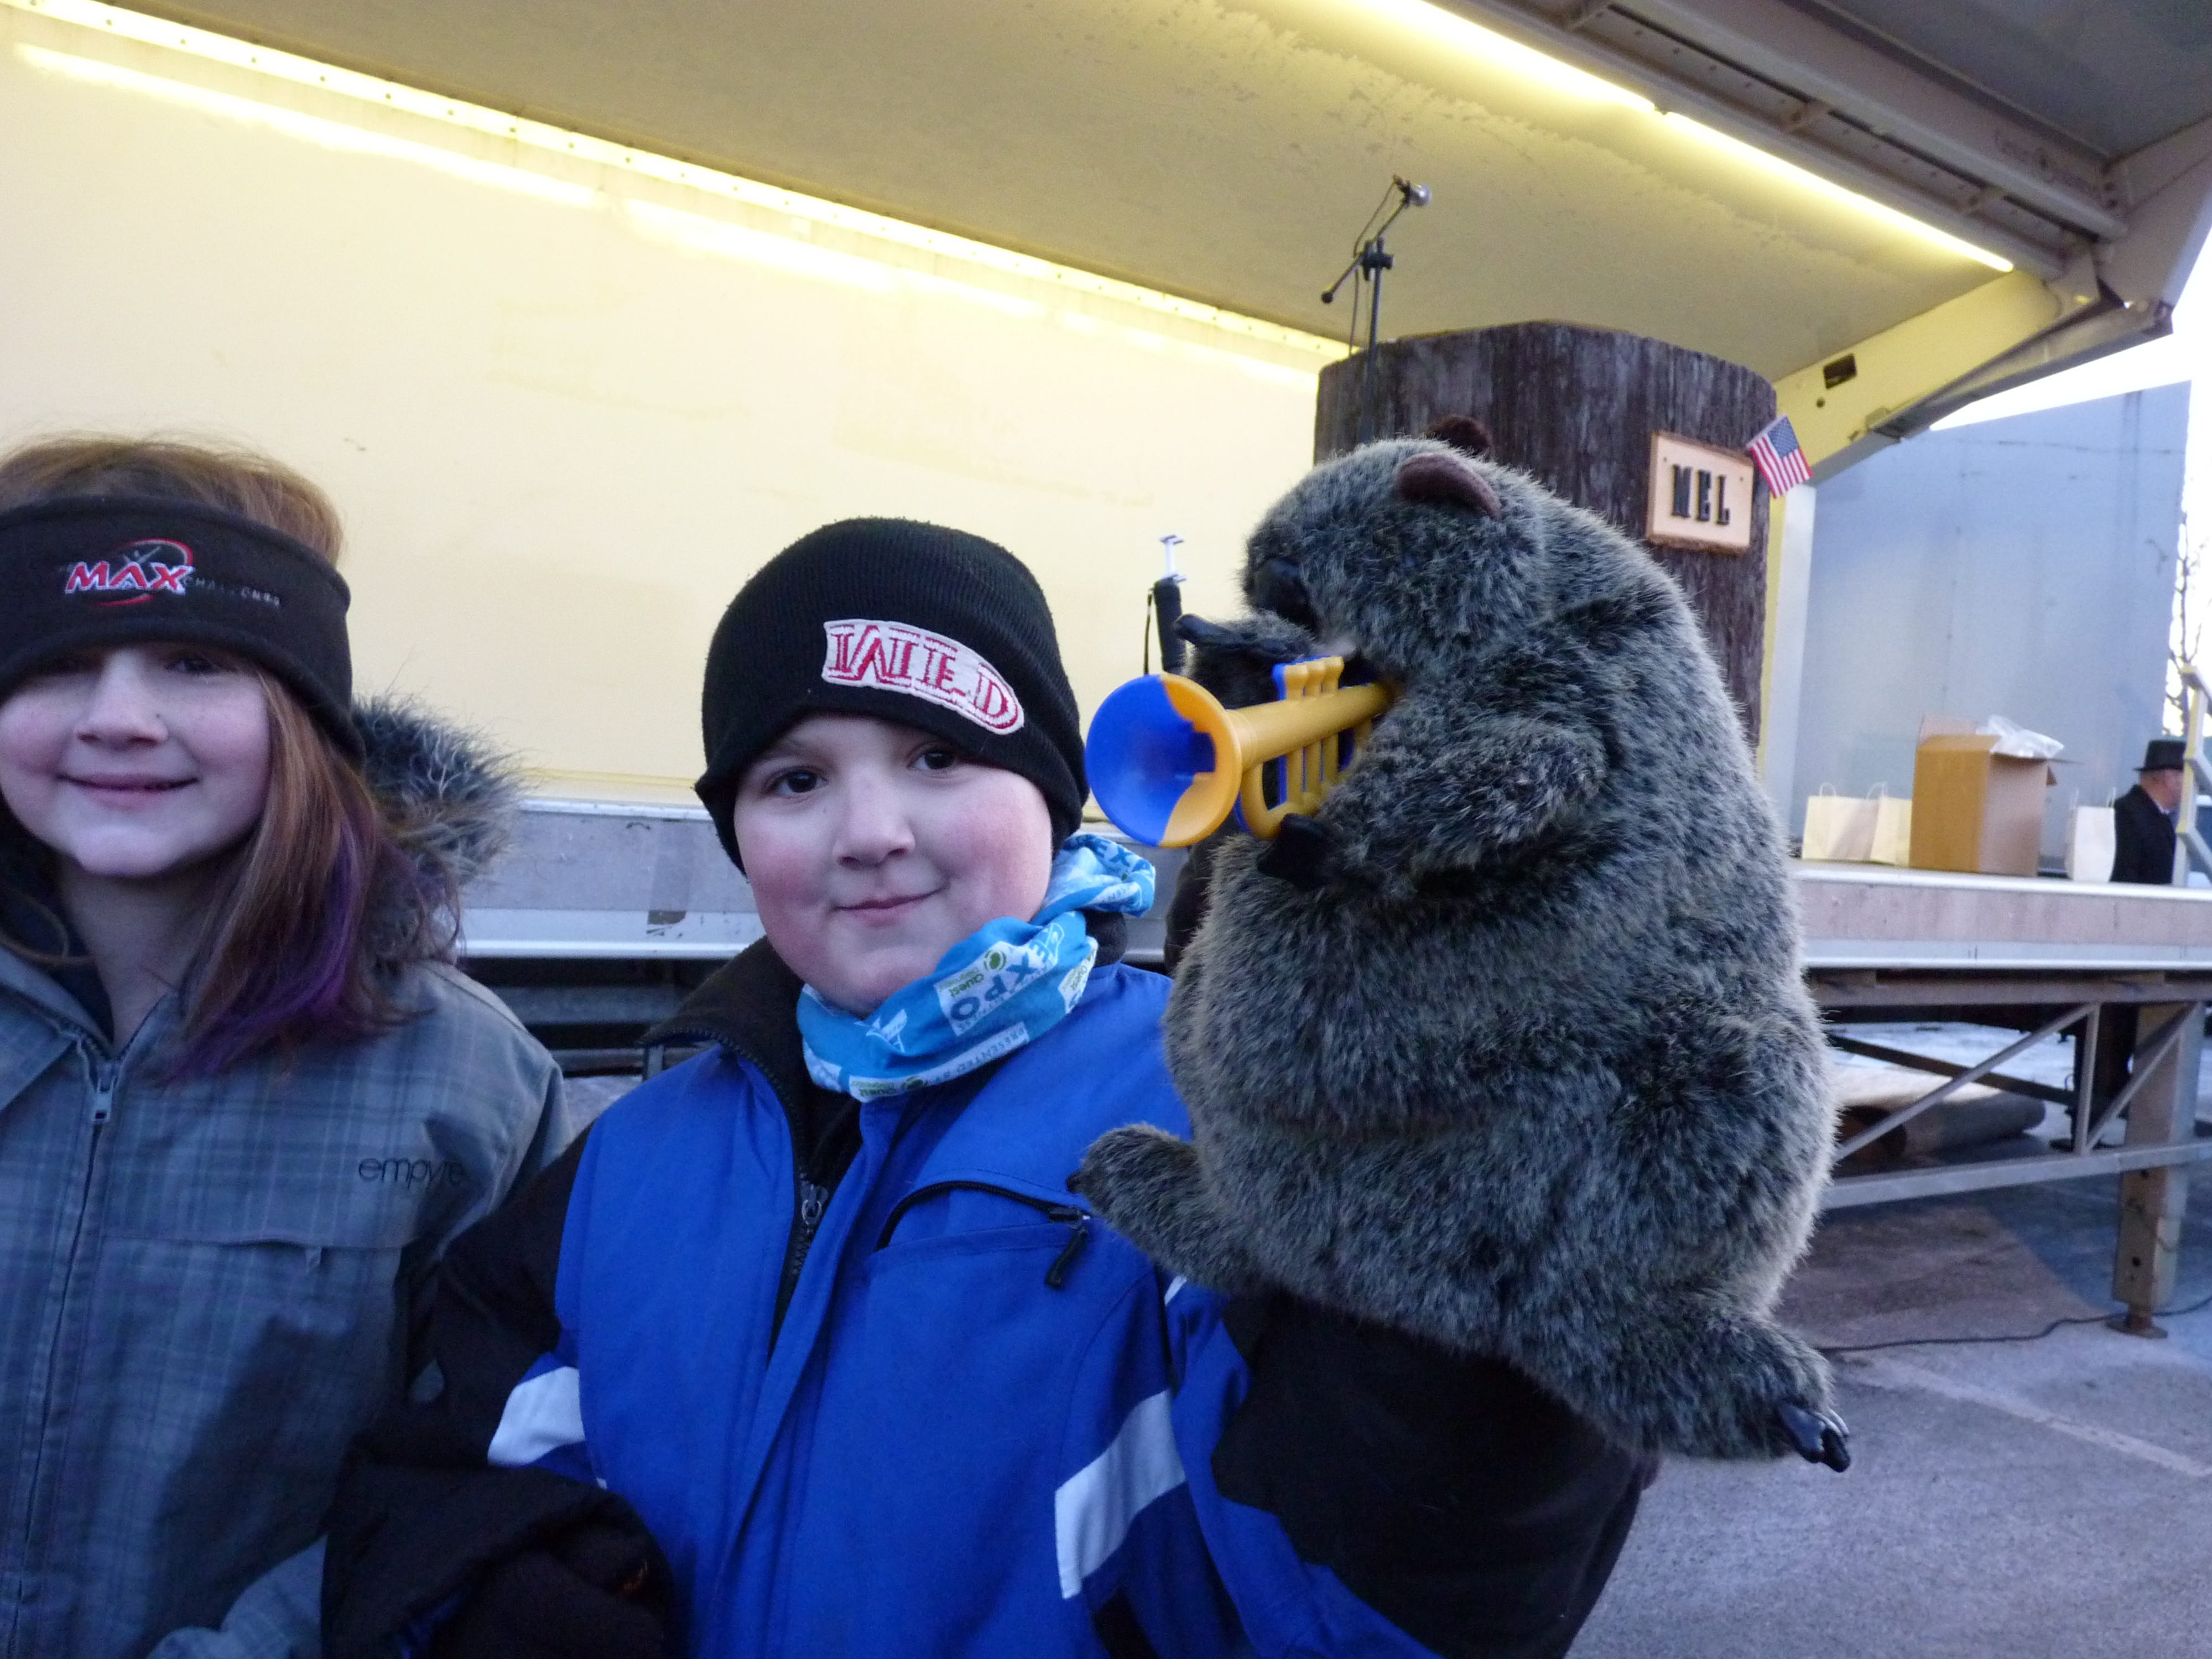 Attendees playing with groundhog props on Groundhog Day in Milltown.